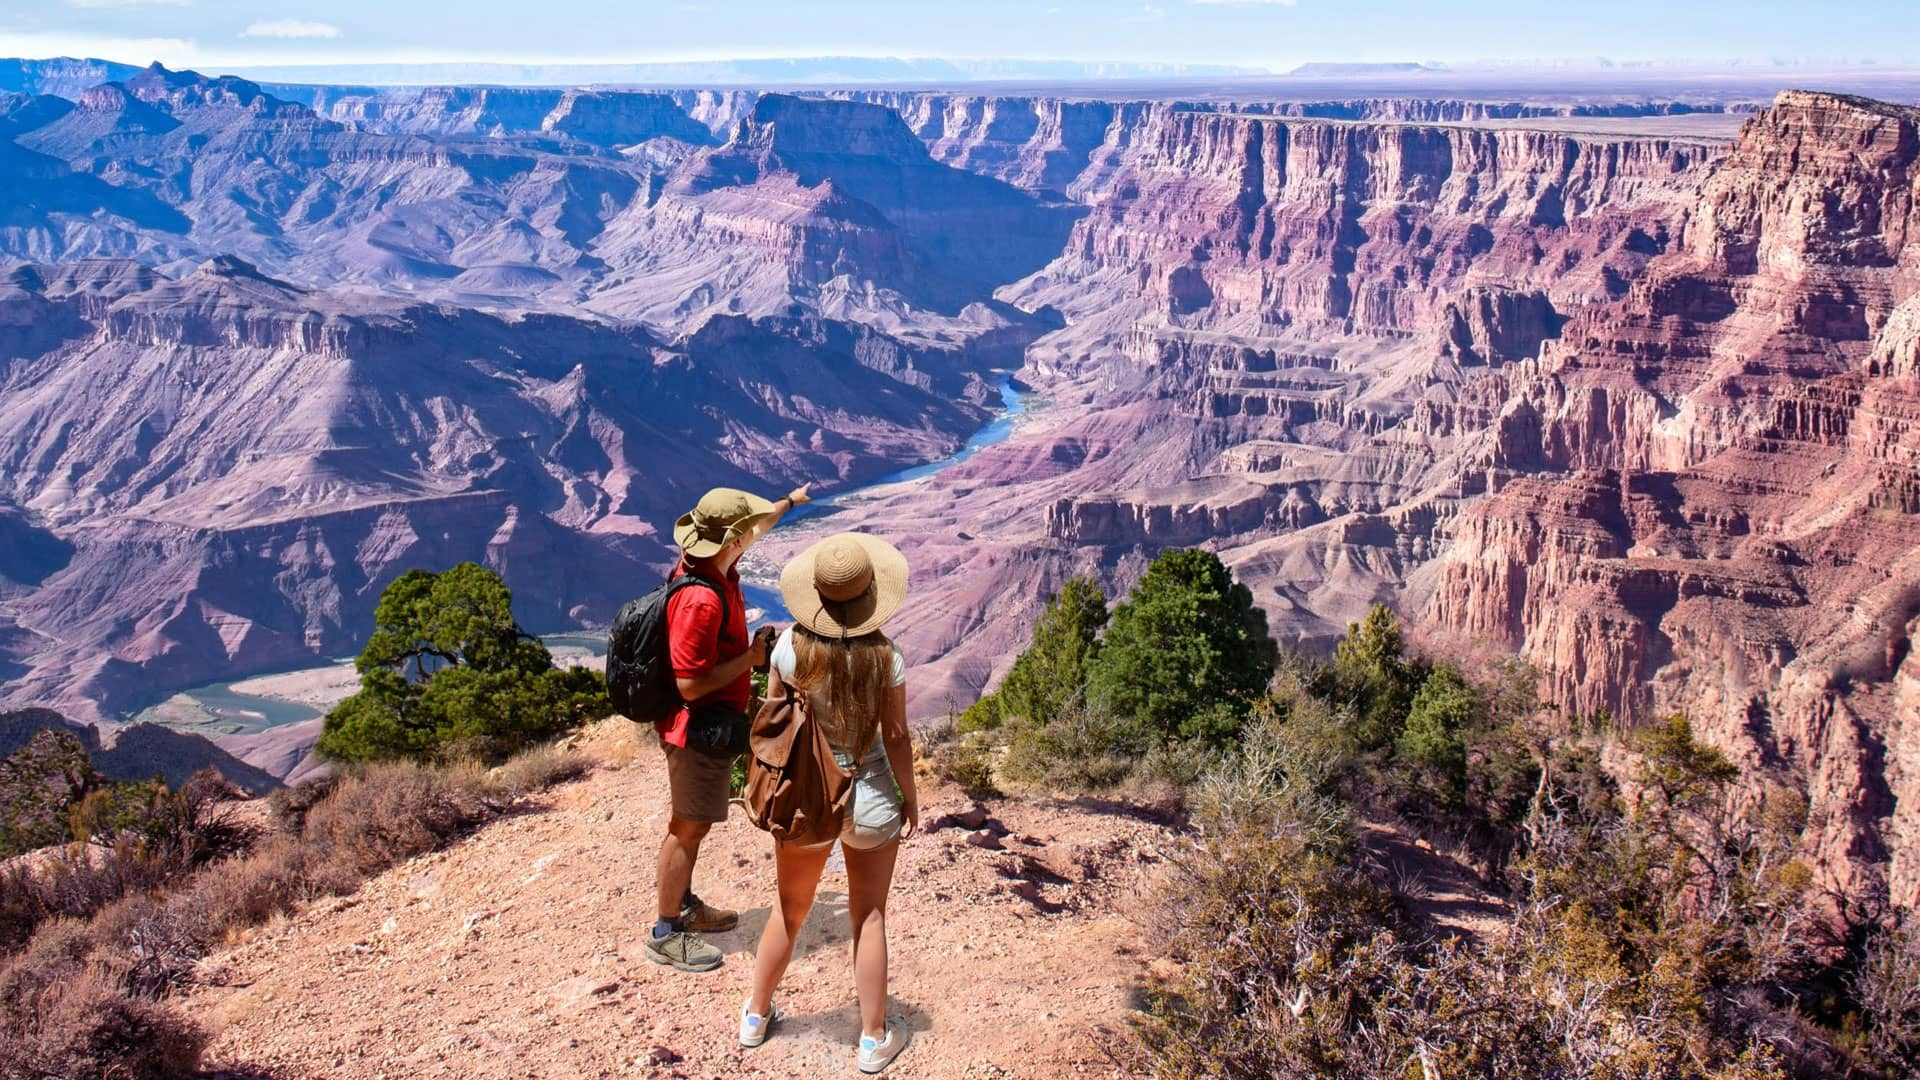 The Grand Canyon – A Relaxing Getaway